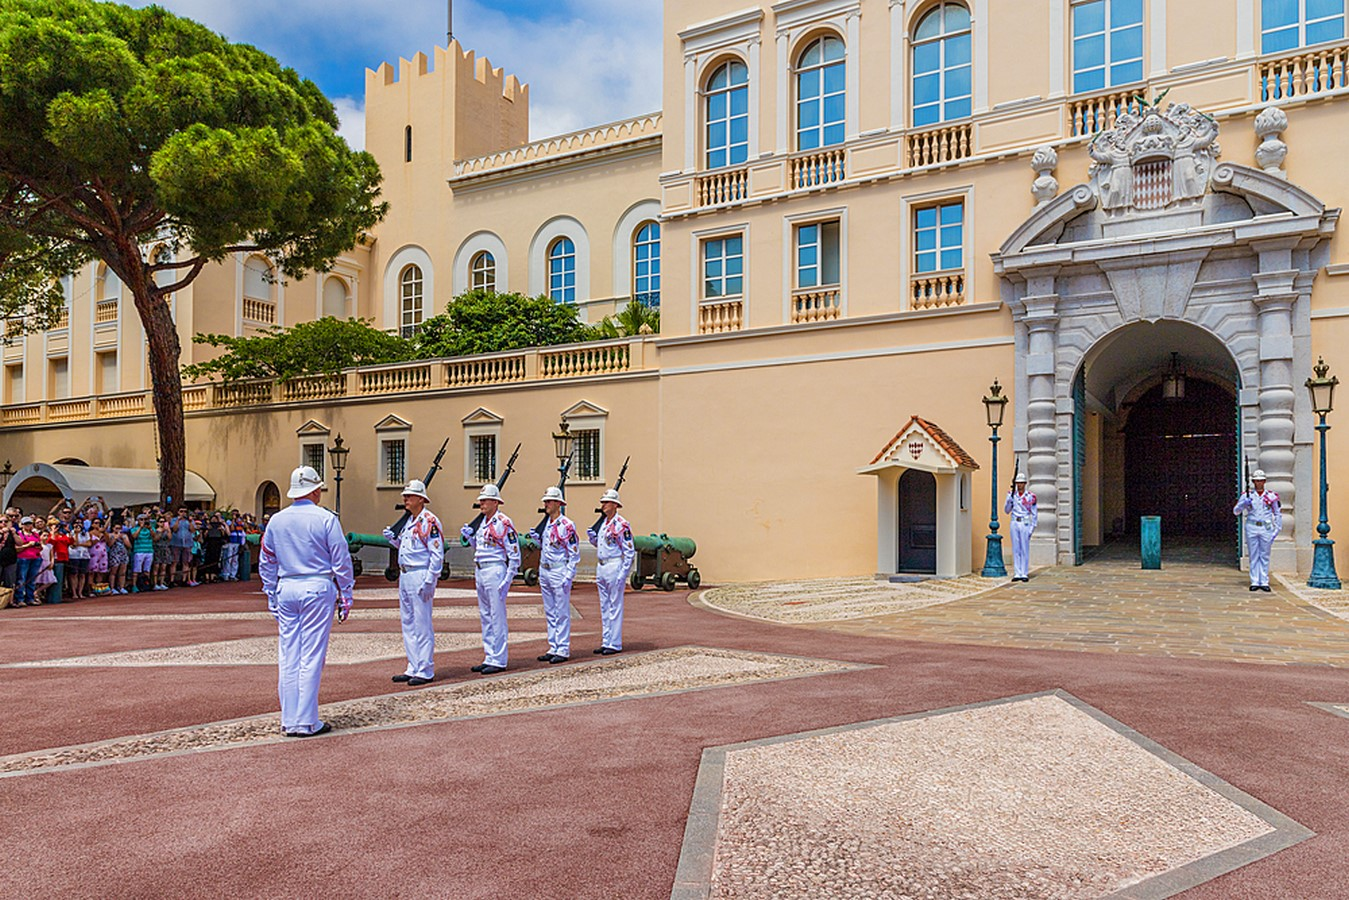 The Prince's Palace- The Monte-Carlo of Monaco - Sheet2